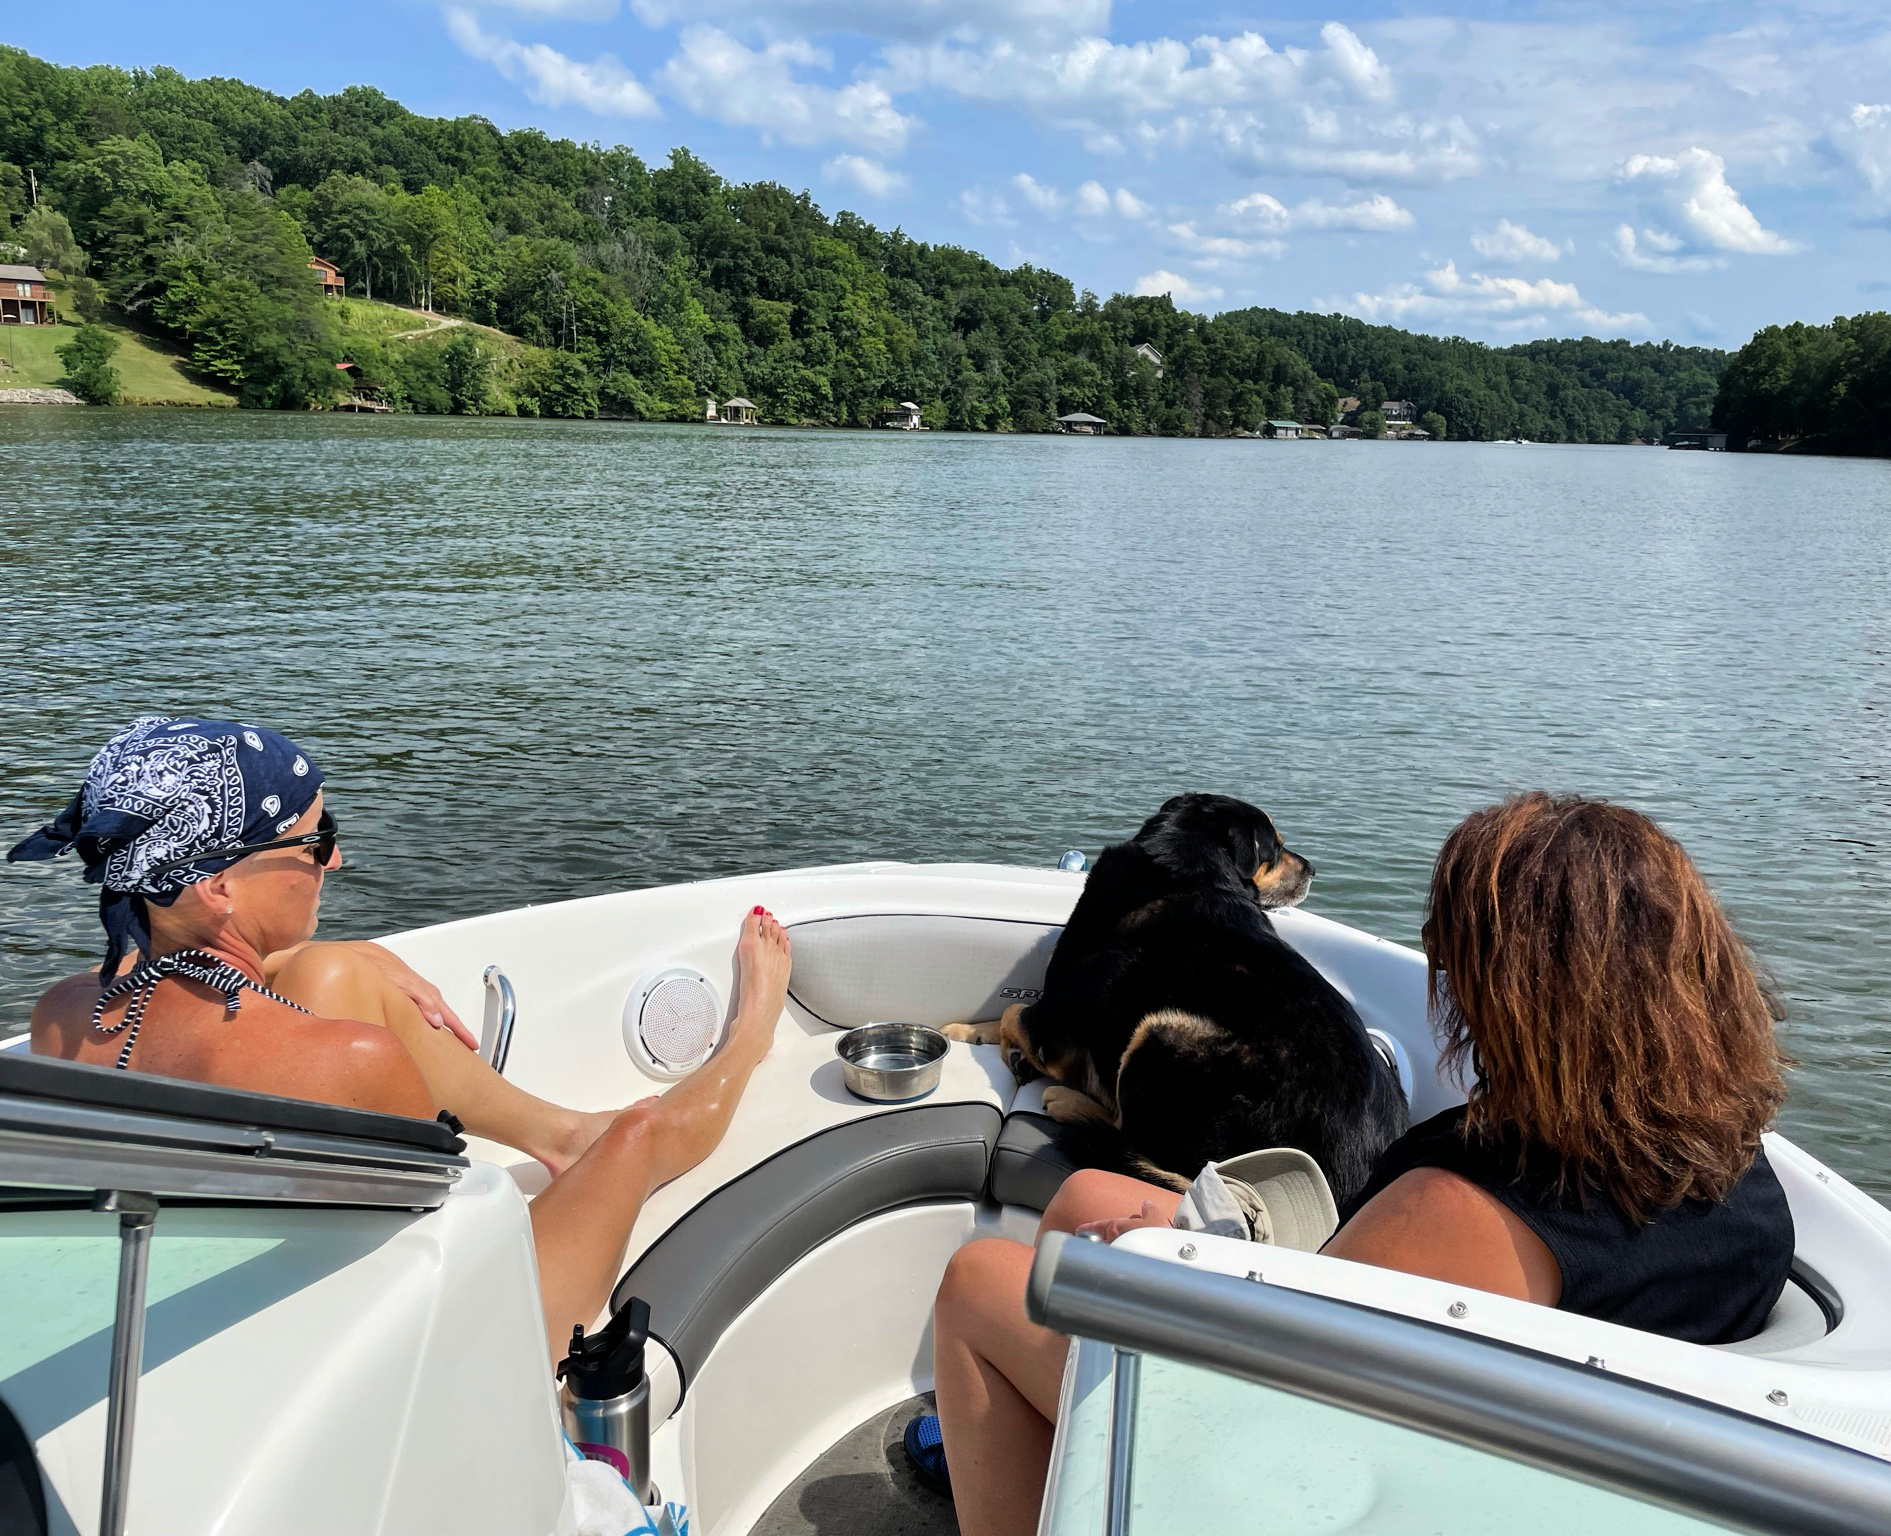 Two women and a dog on a boat at Smith Mountain Lake, VA